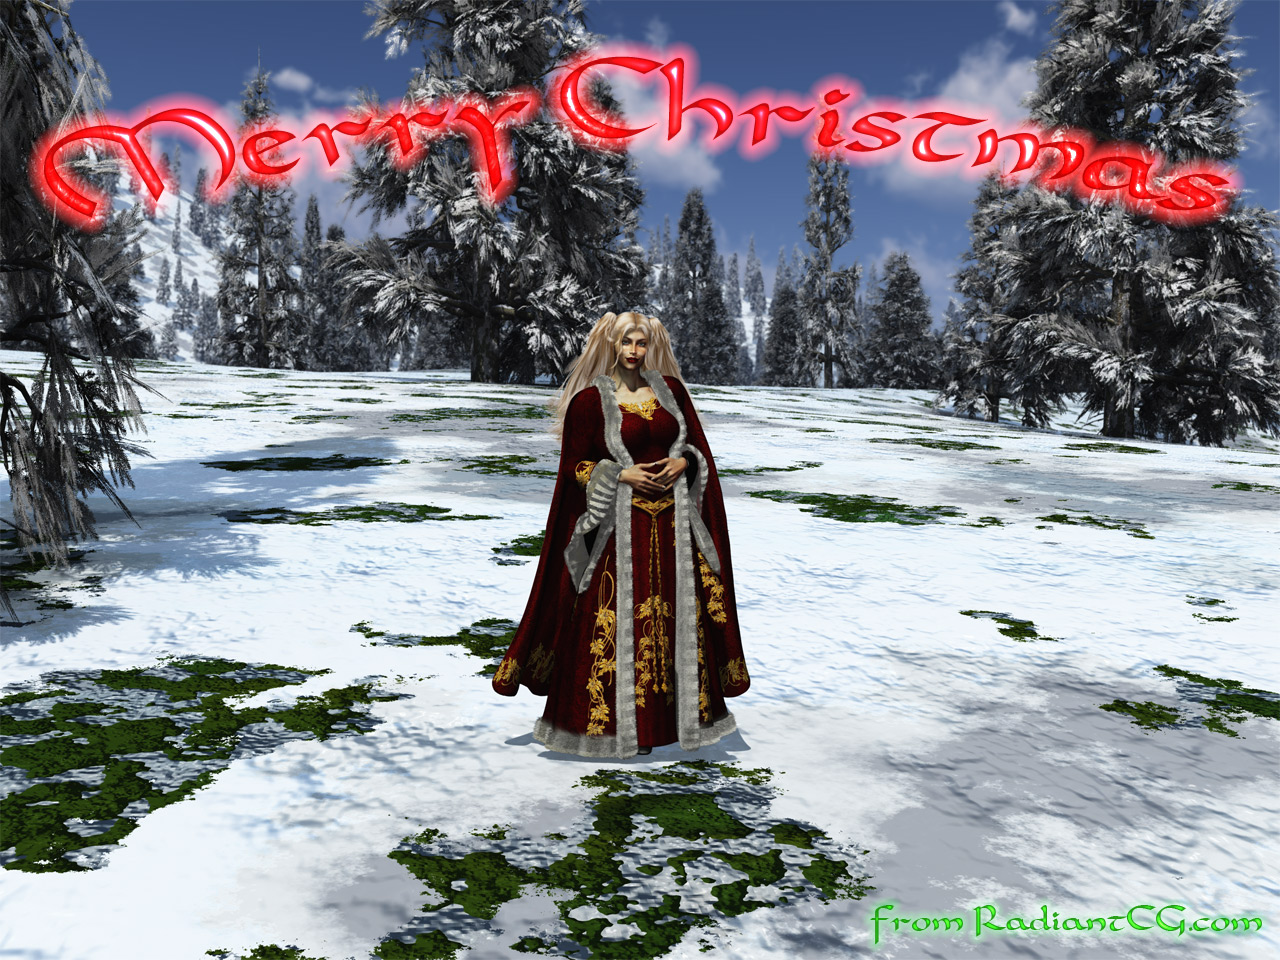 Christmas Maiden - '07 Edition!